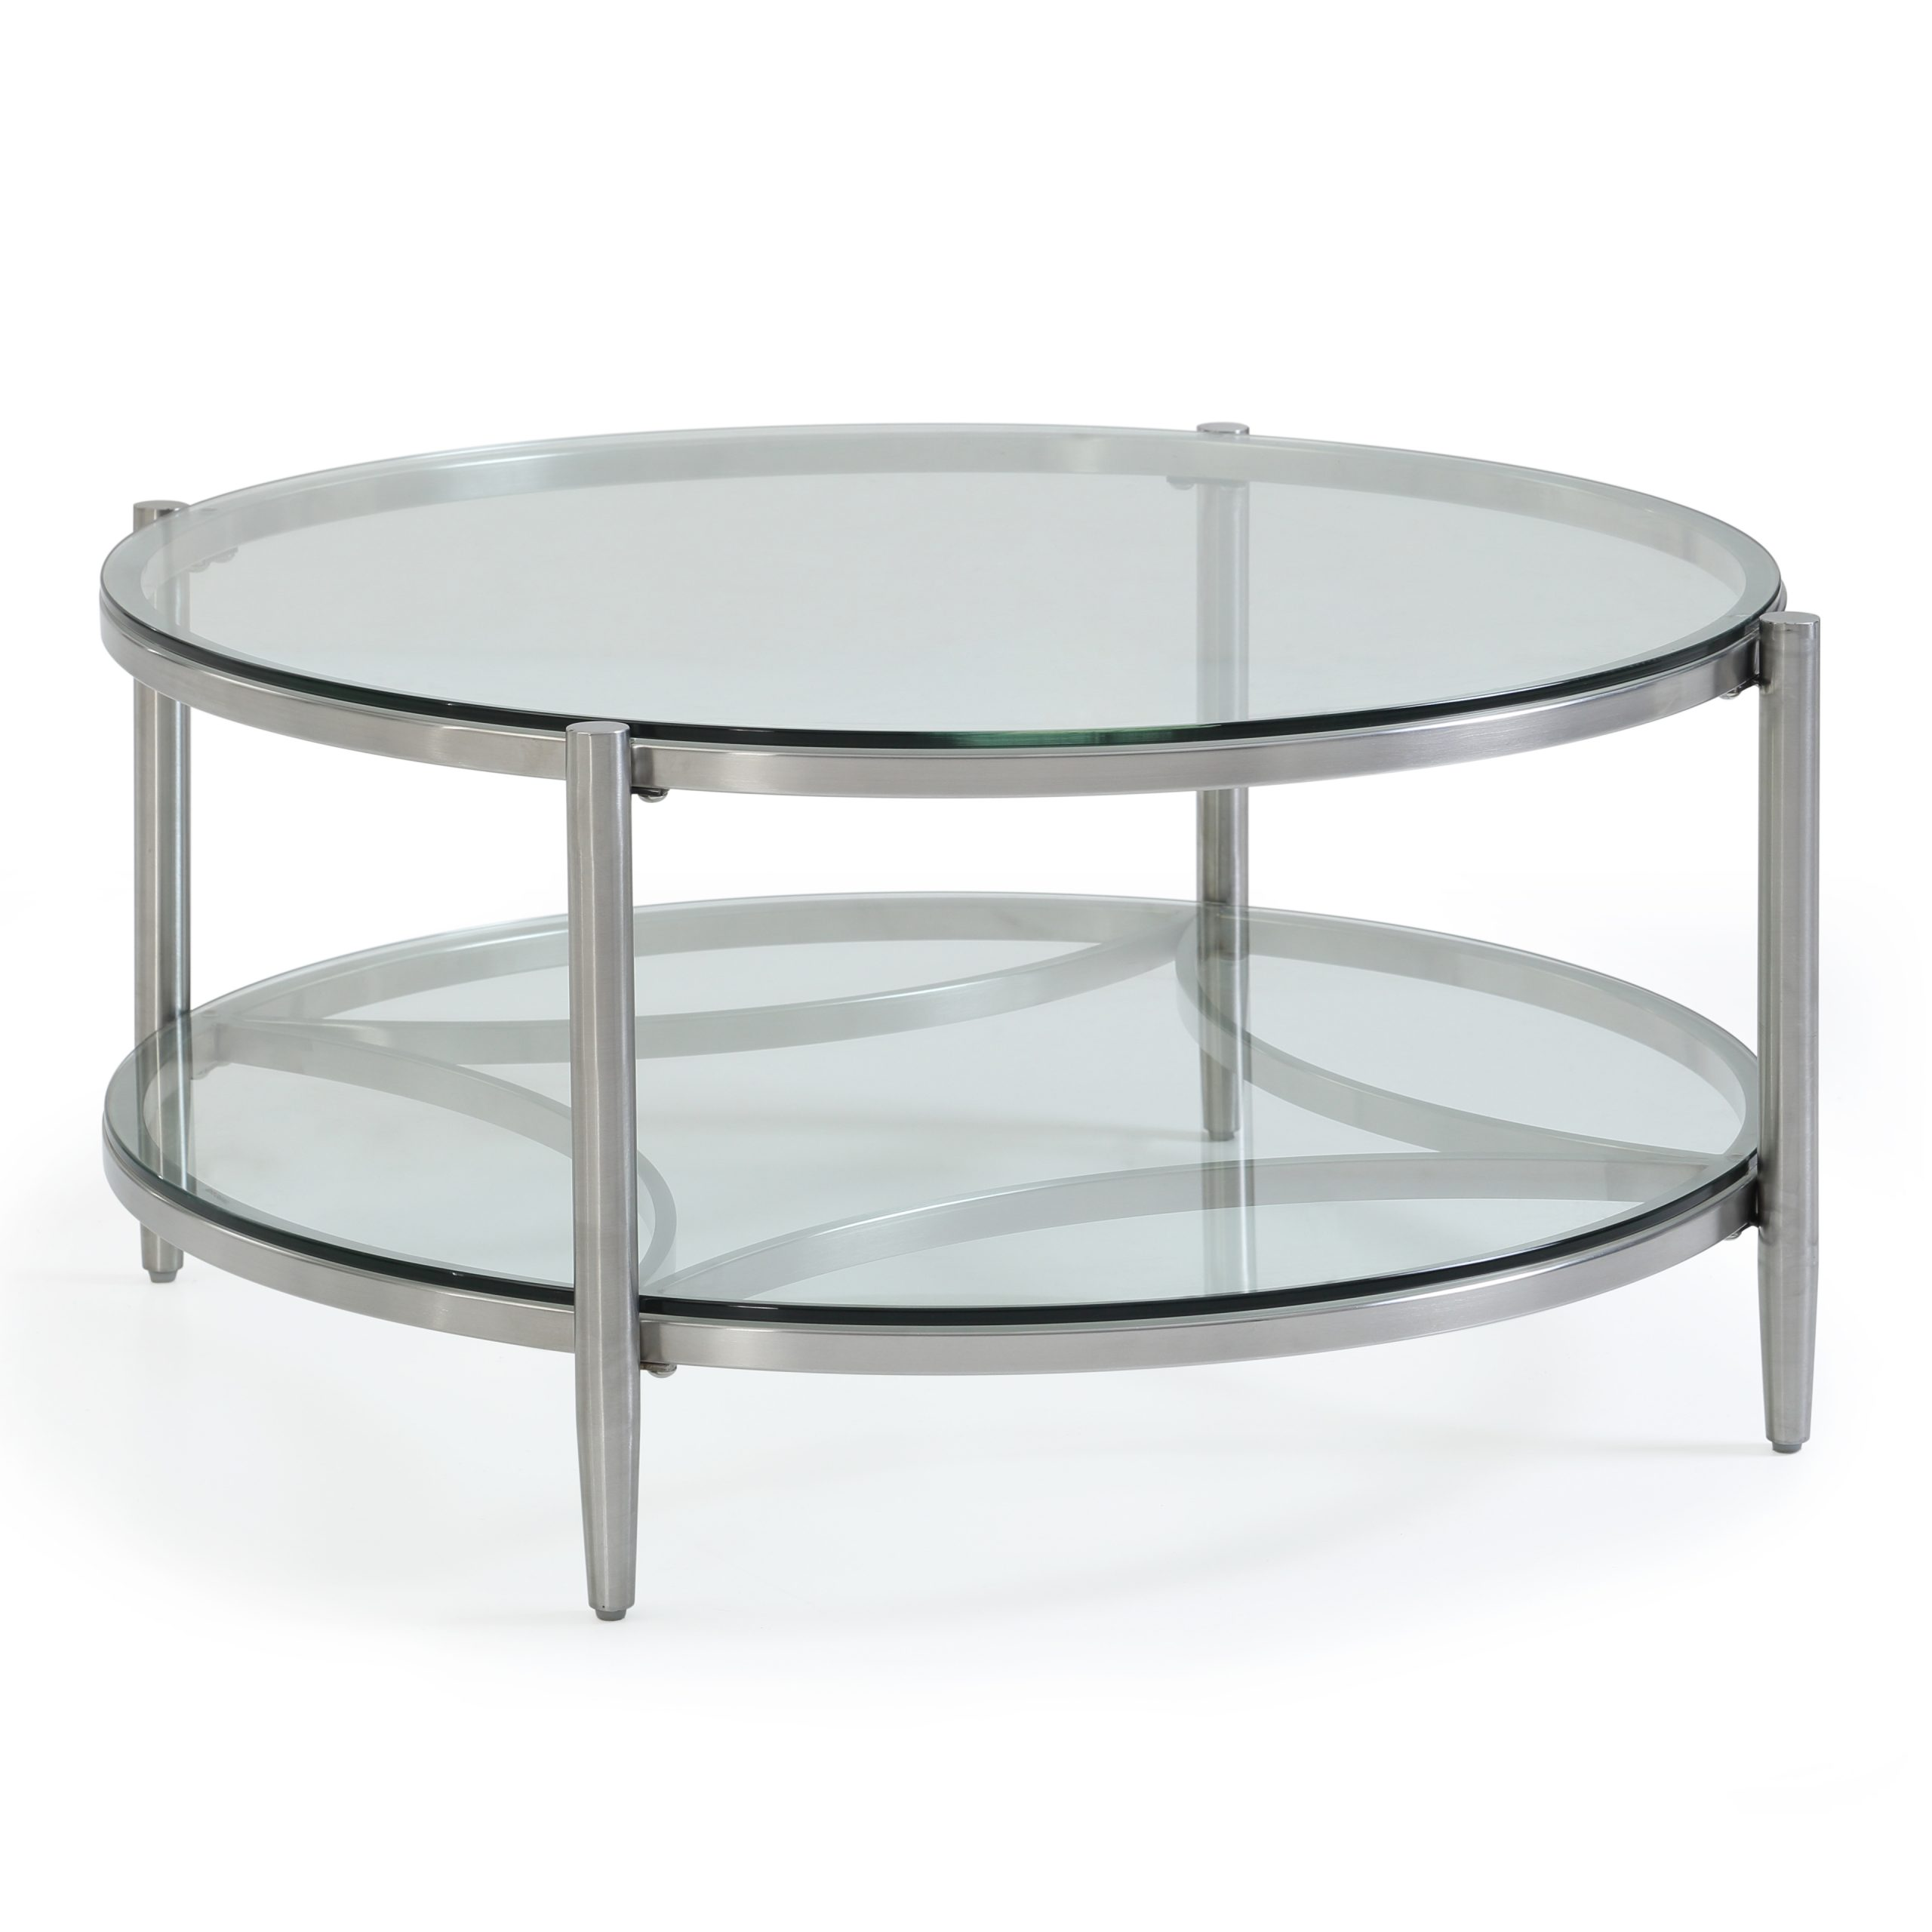 Most Popular Dining Tables With Brushed Stainless Steel Frame Within Stanmore Collection – Circular Coffee Table – Brushed Stainless Steel  Frame/clear Glass Top & Shelf (Gallery 21 of 30)